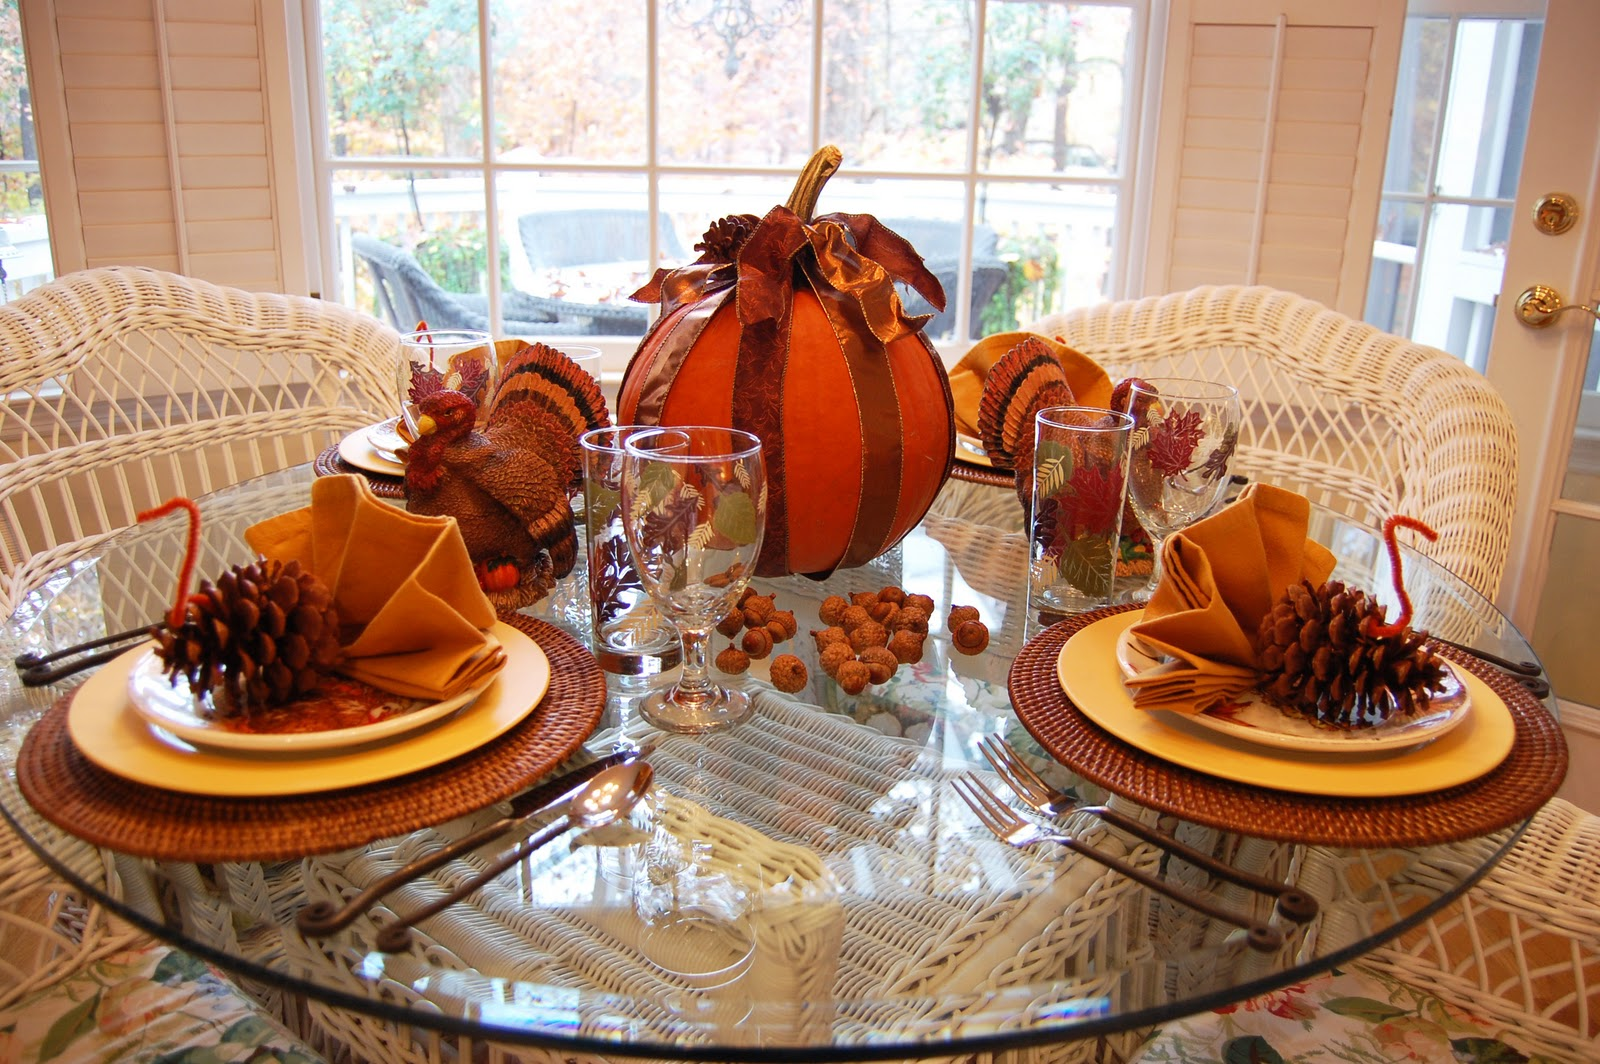 Remarkable 6 Ideas To Decorate On Thanksgiving Day Download Free Architecture Designs Sospemadebymaigaardcom